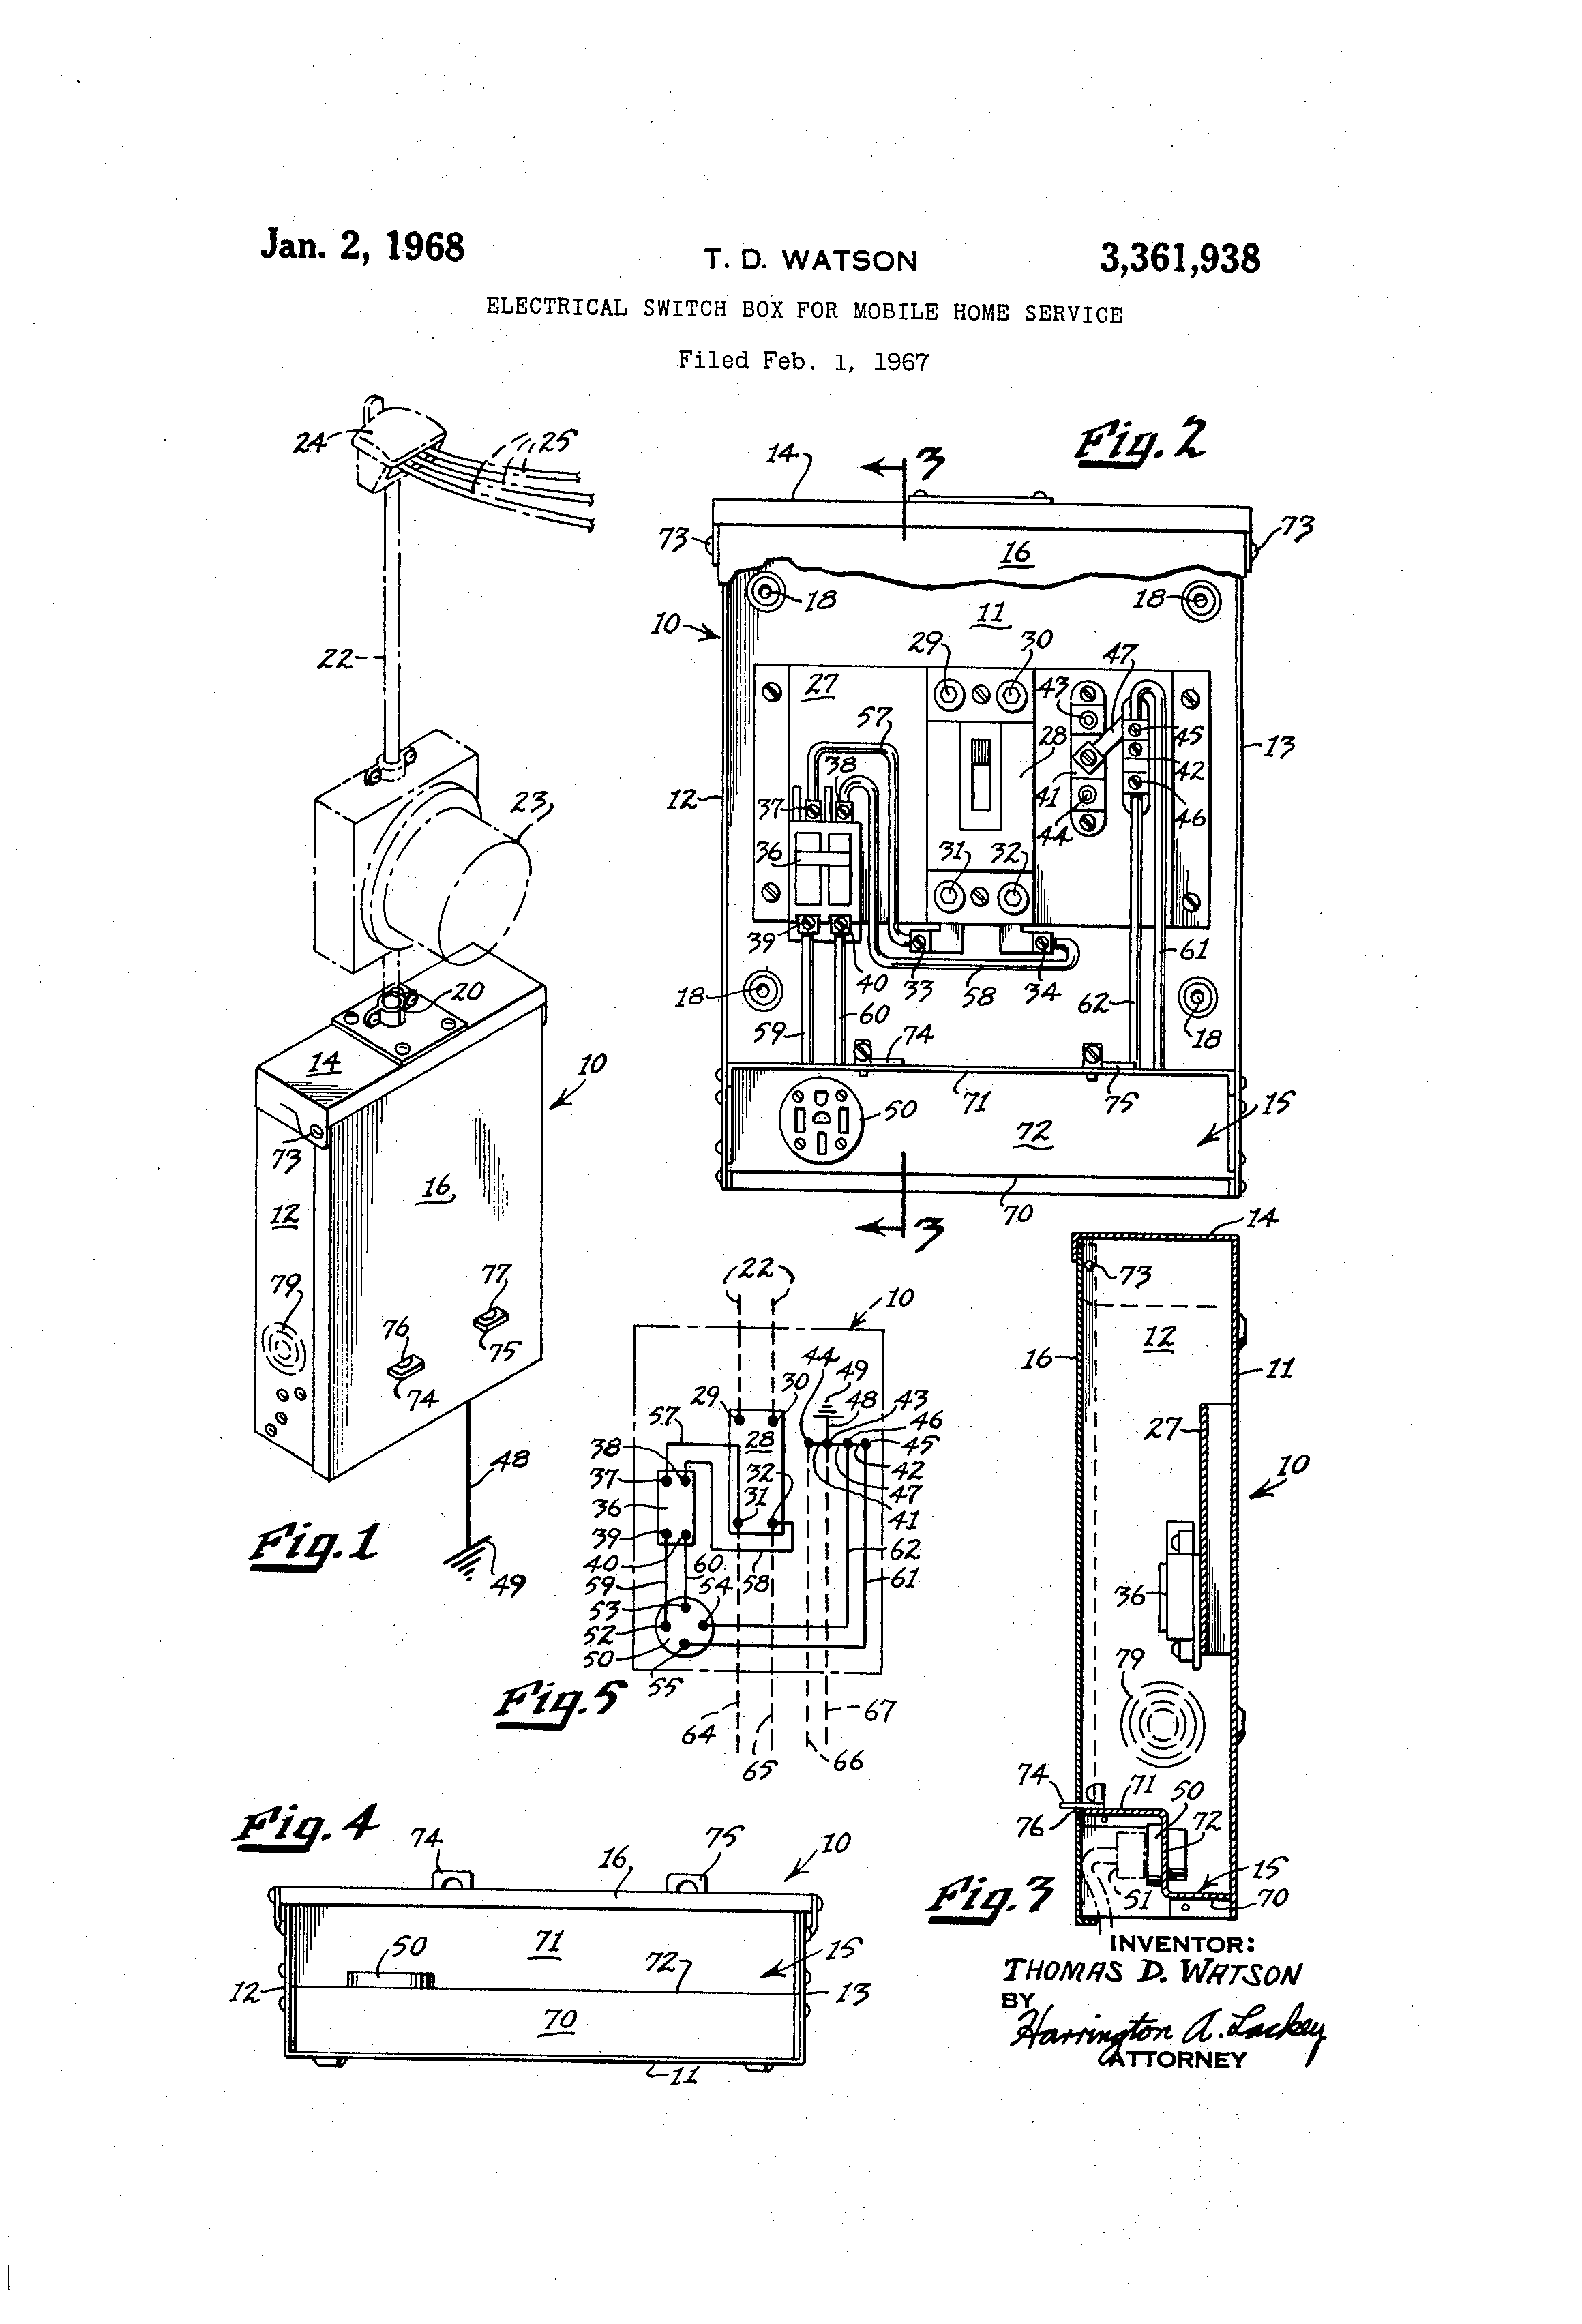 patent us3361938 - electrical switch box for mobile home service